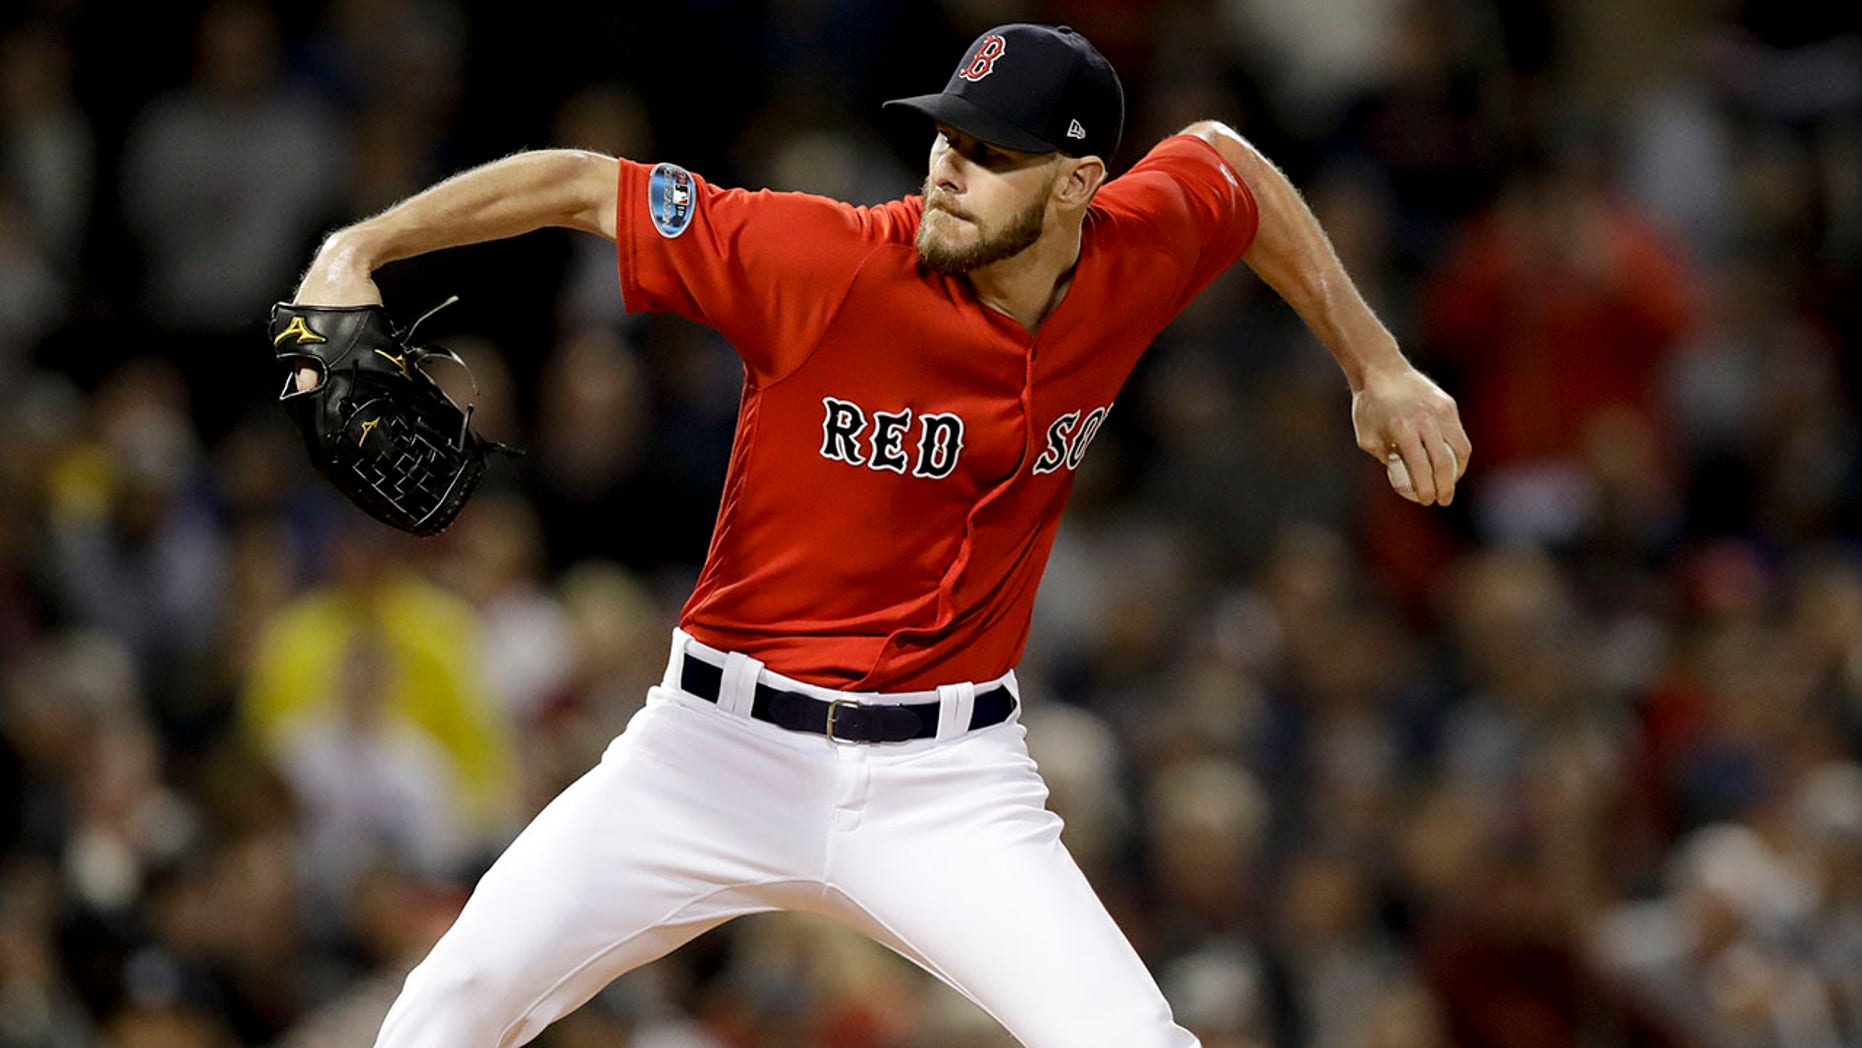 Boston Red Sox starting pitcher Chris Sale throws to a New York Yankees batter during the first inning of Game 1 of the American League Division Series, in Boston, Oct. 5, 2018.